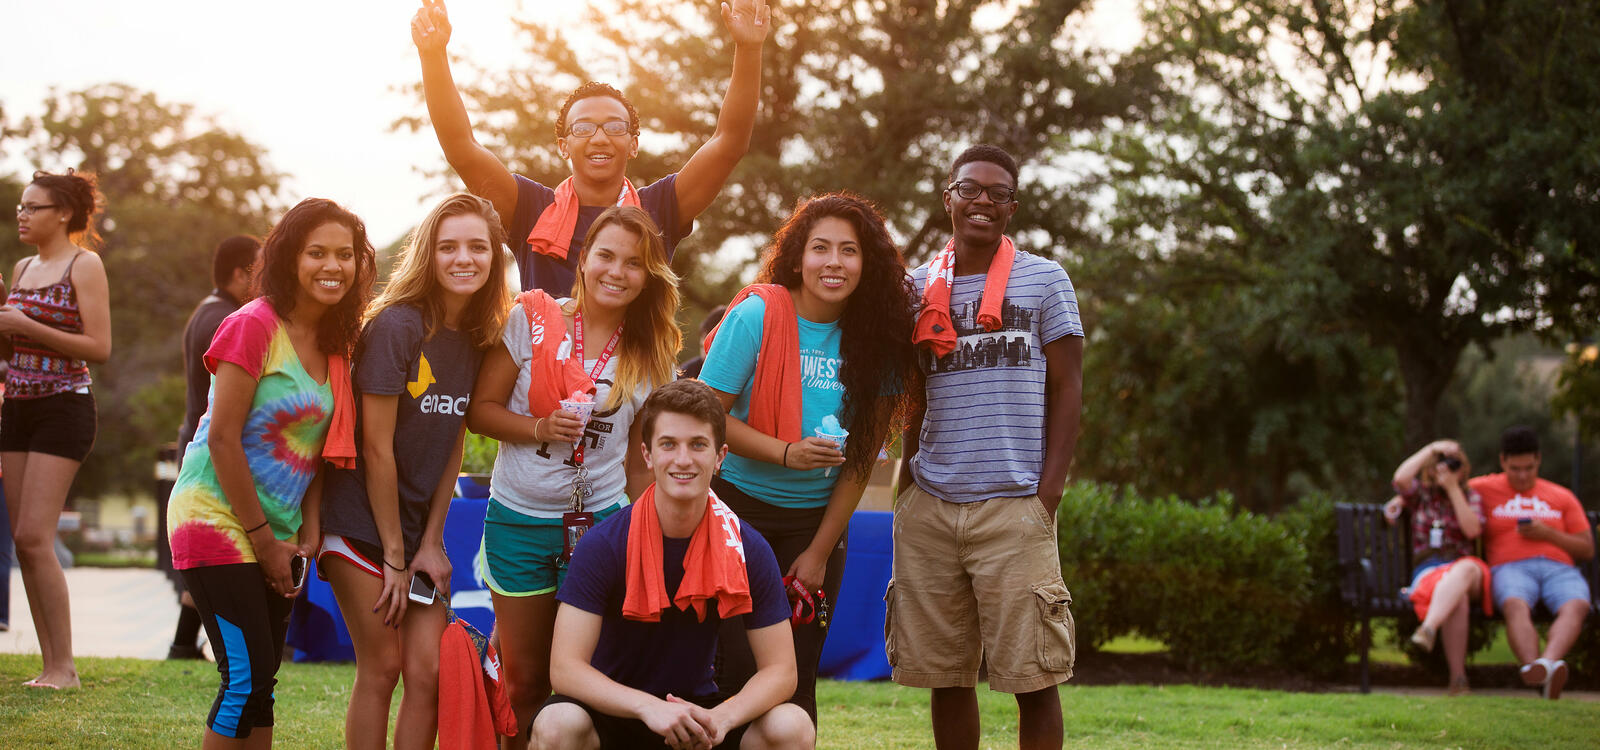 A group of seven students wearing summer clothing, smile in a group as they all have orange t-shirts arund their necks